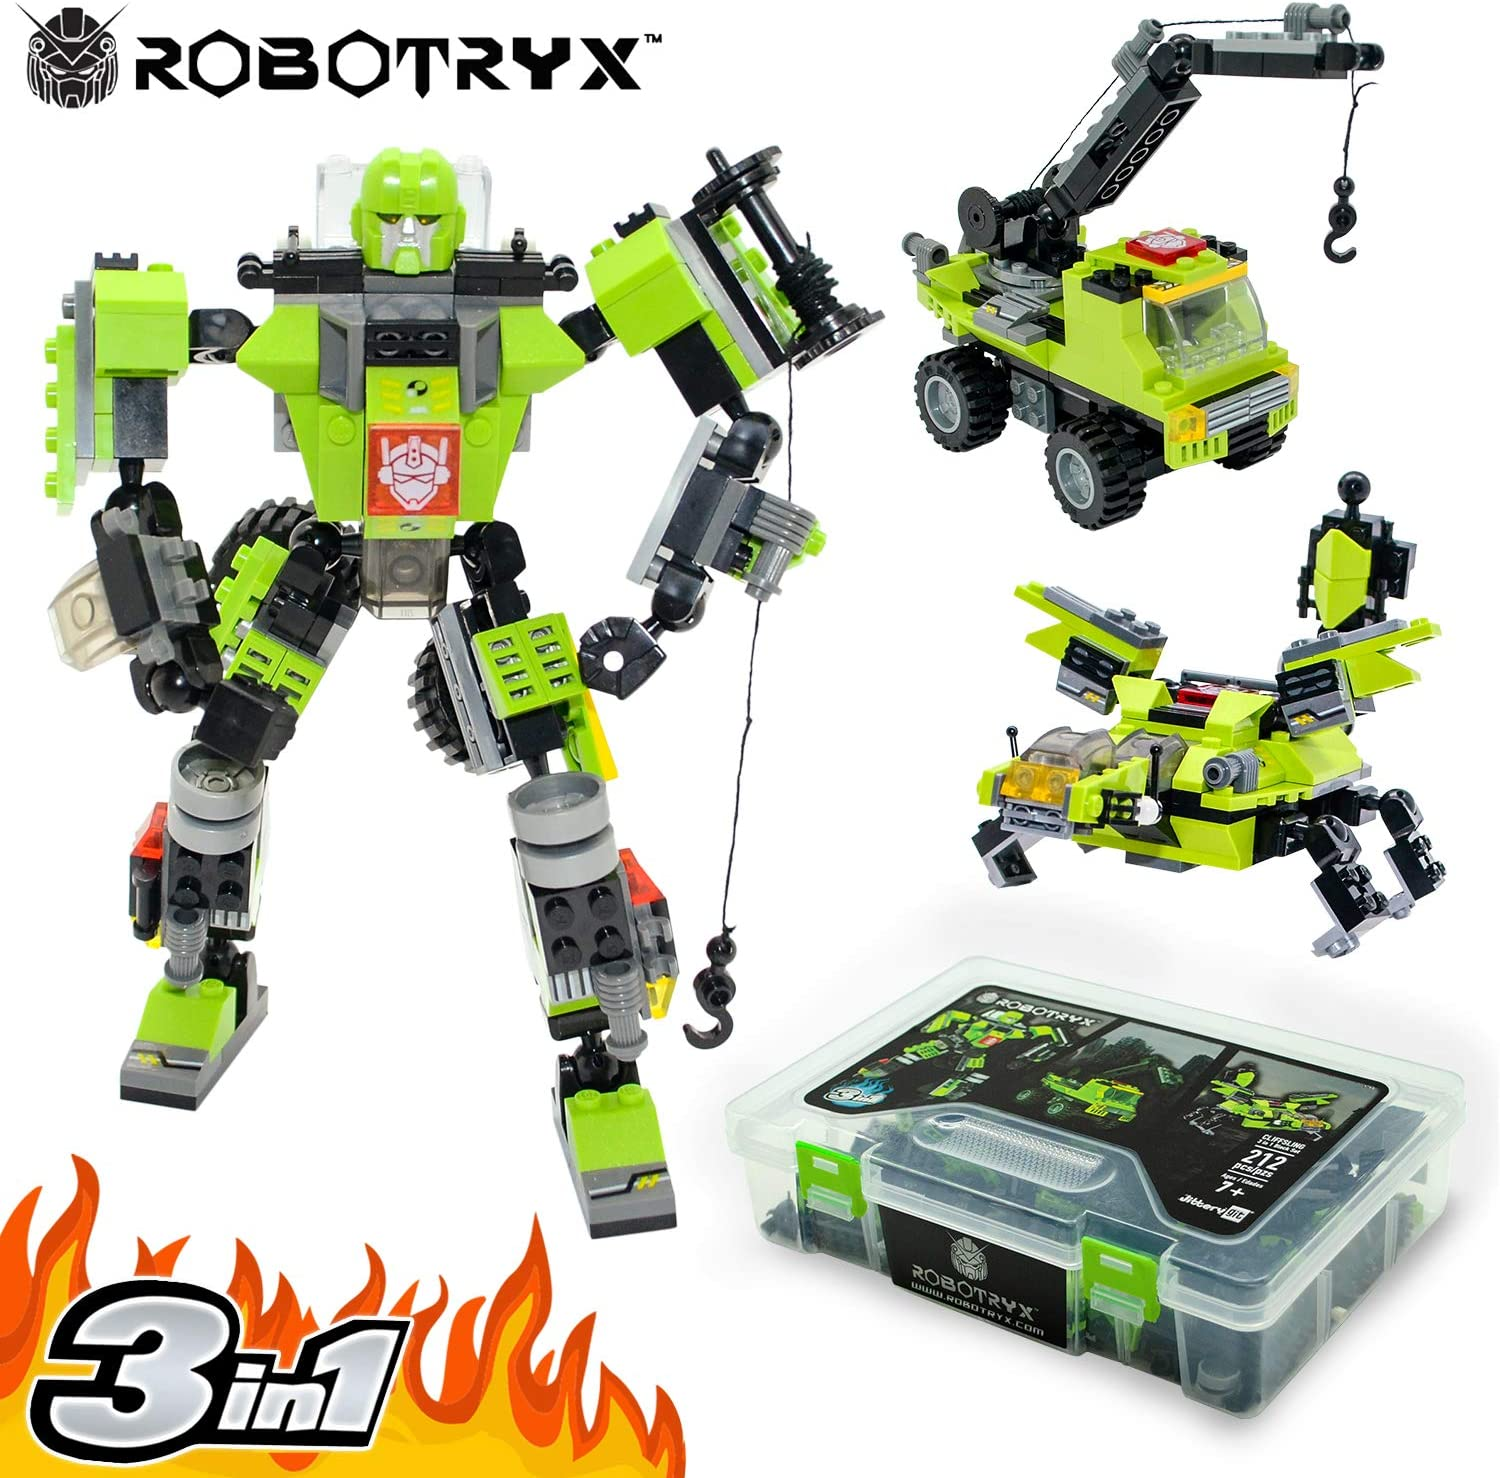 Construction Building Toys for Boys Ages 6-14 Years Old Best Toy Gift for Kids Free Poster Kit Included 3 in 1 Fun Creative Set JITTERYGIT Robot STEM Toy